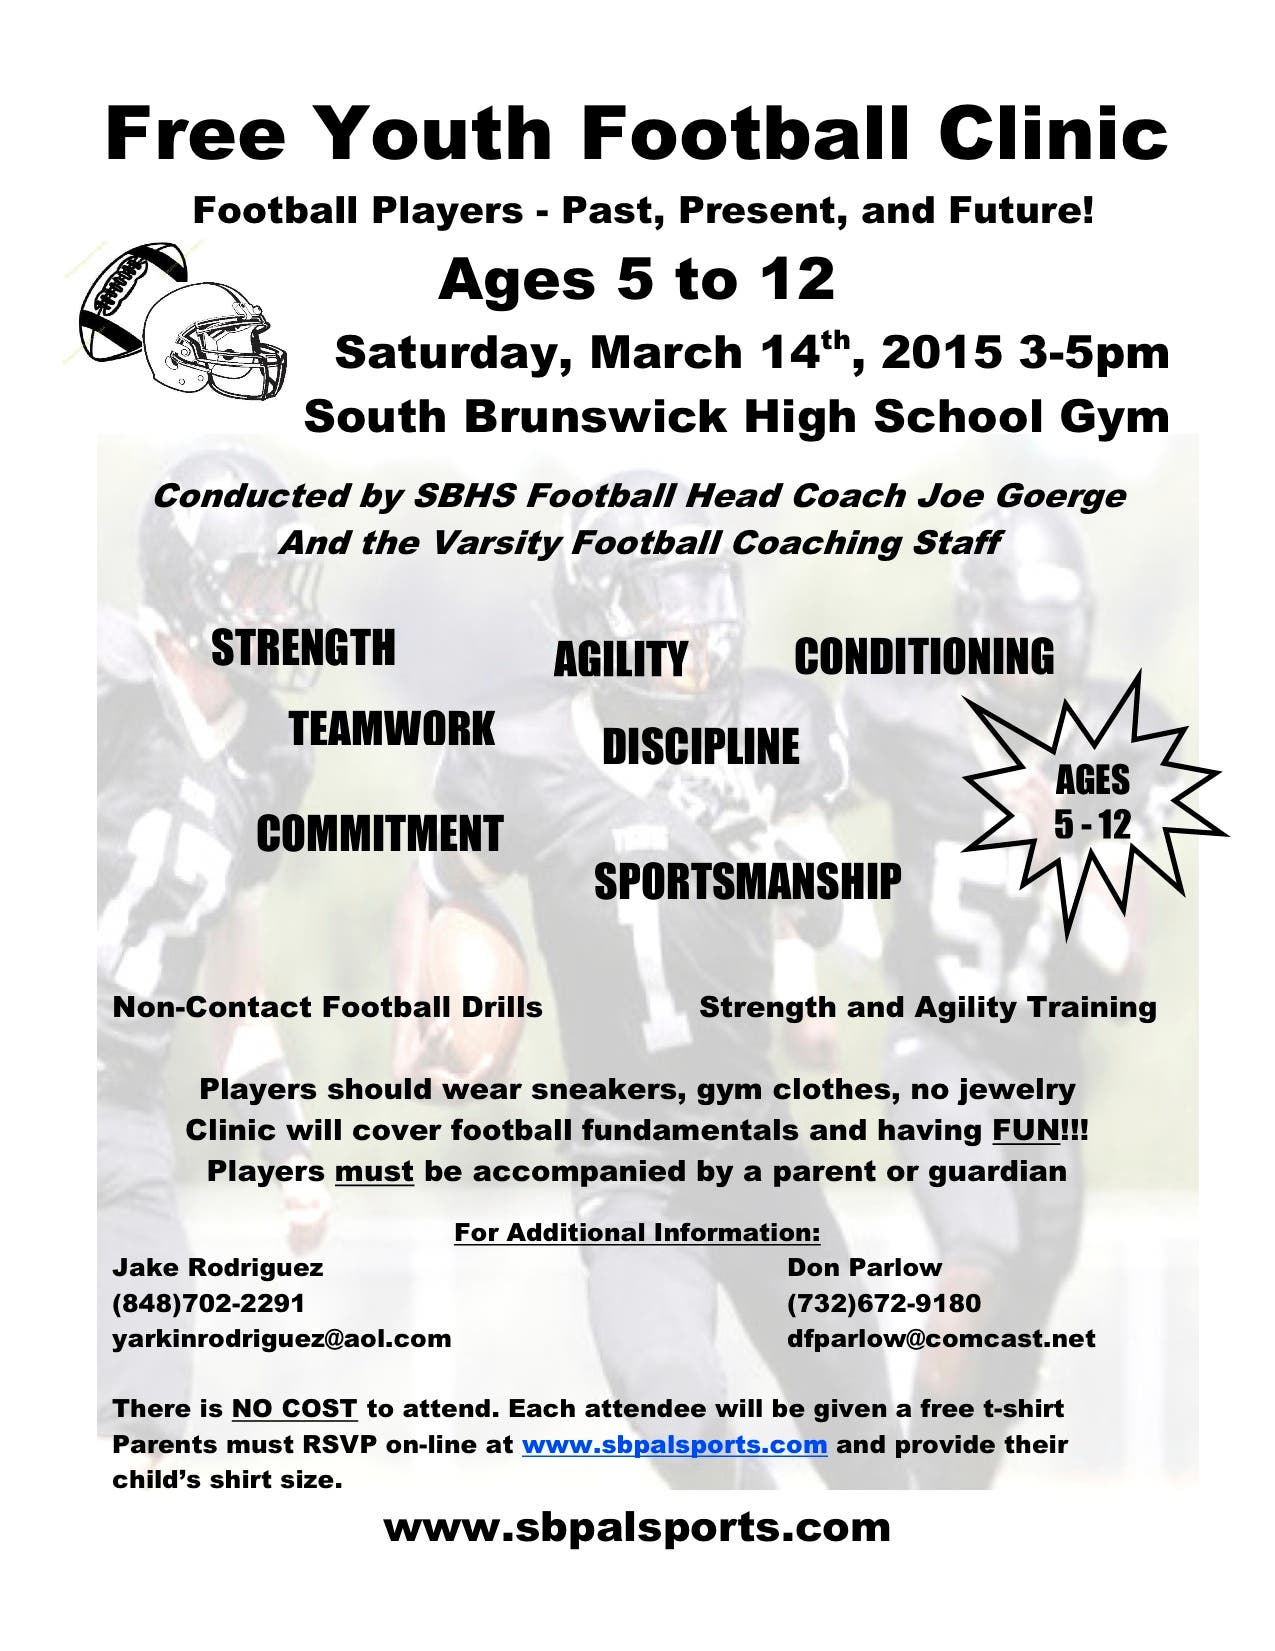 FREE South Brunswick Youth Football Clinic Hosted by SBHS Varsity